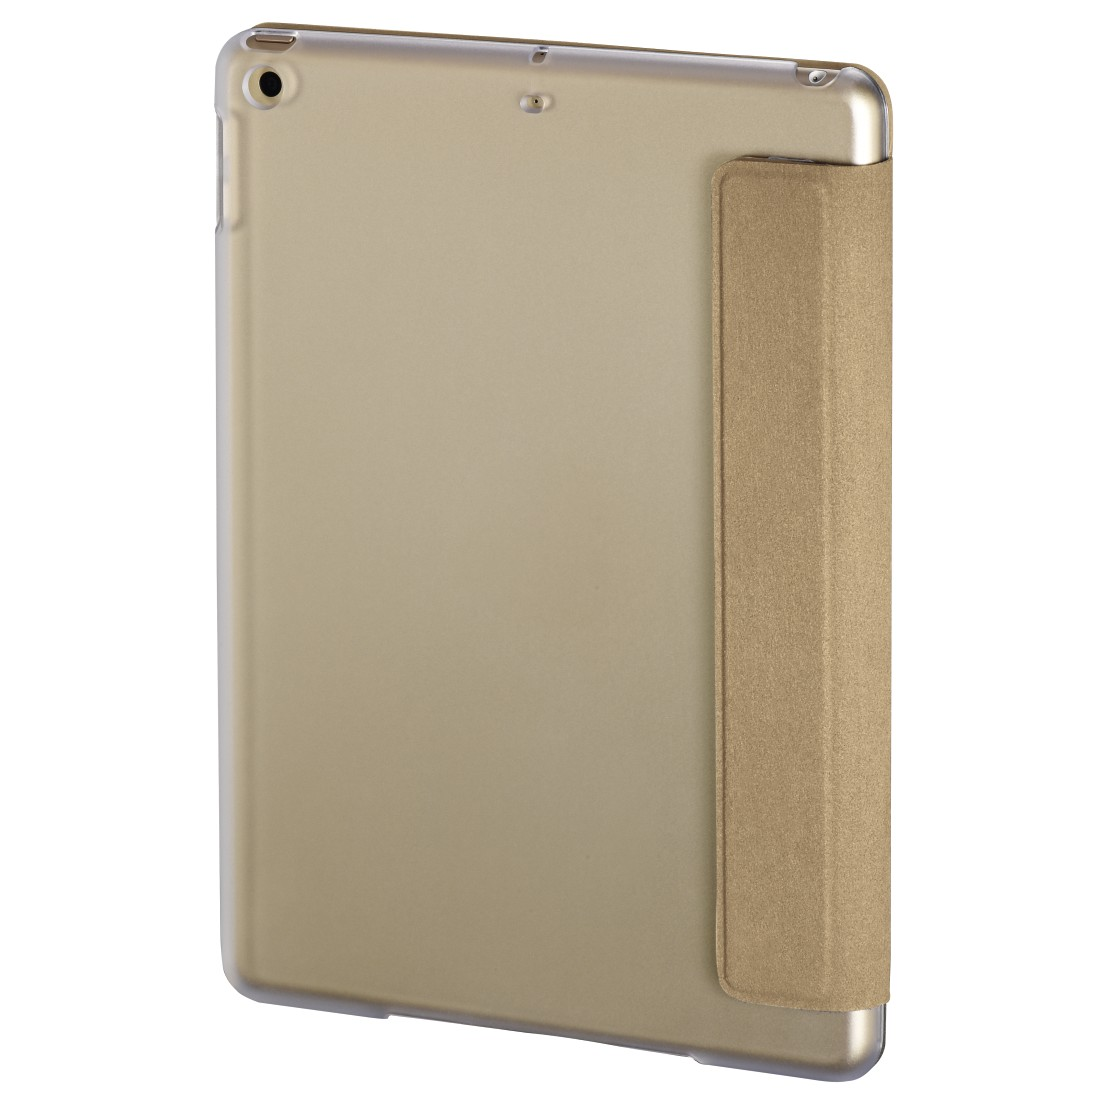 "awx3 High-Res Appliance 3 - Hama, Tablet-case ""Suede Style"" voor Apple iPad 9.7 (2017/2018), beige"